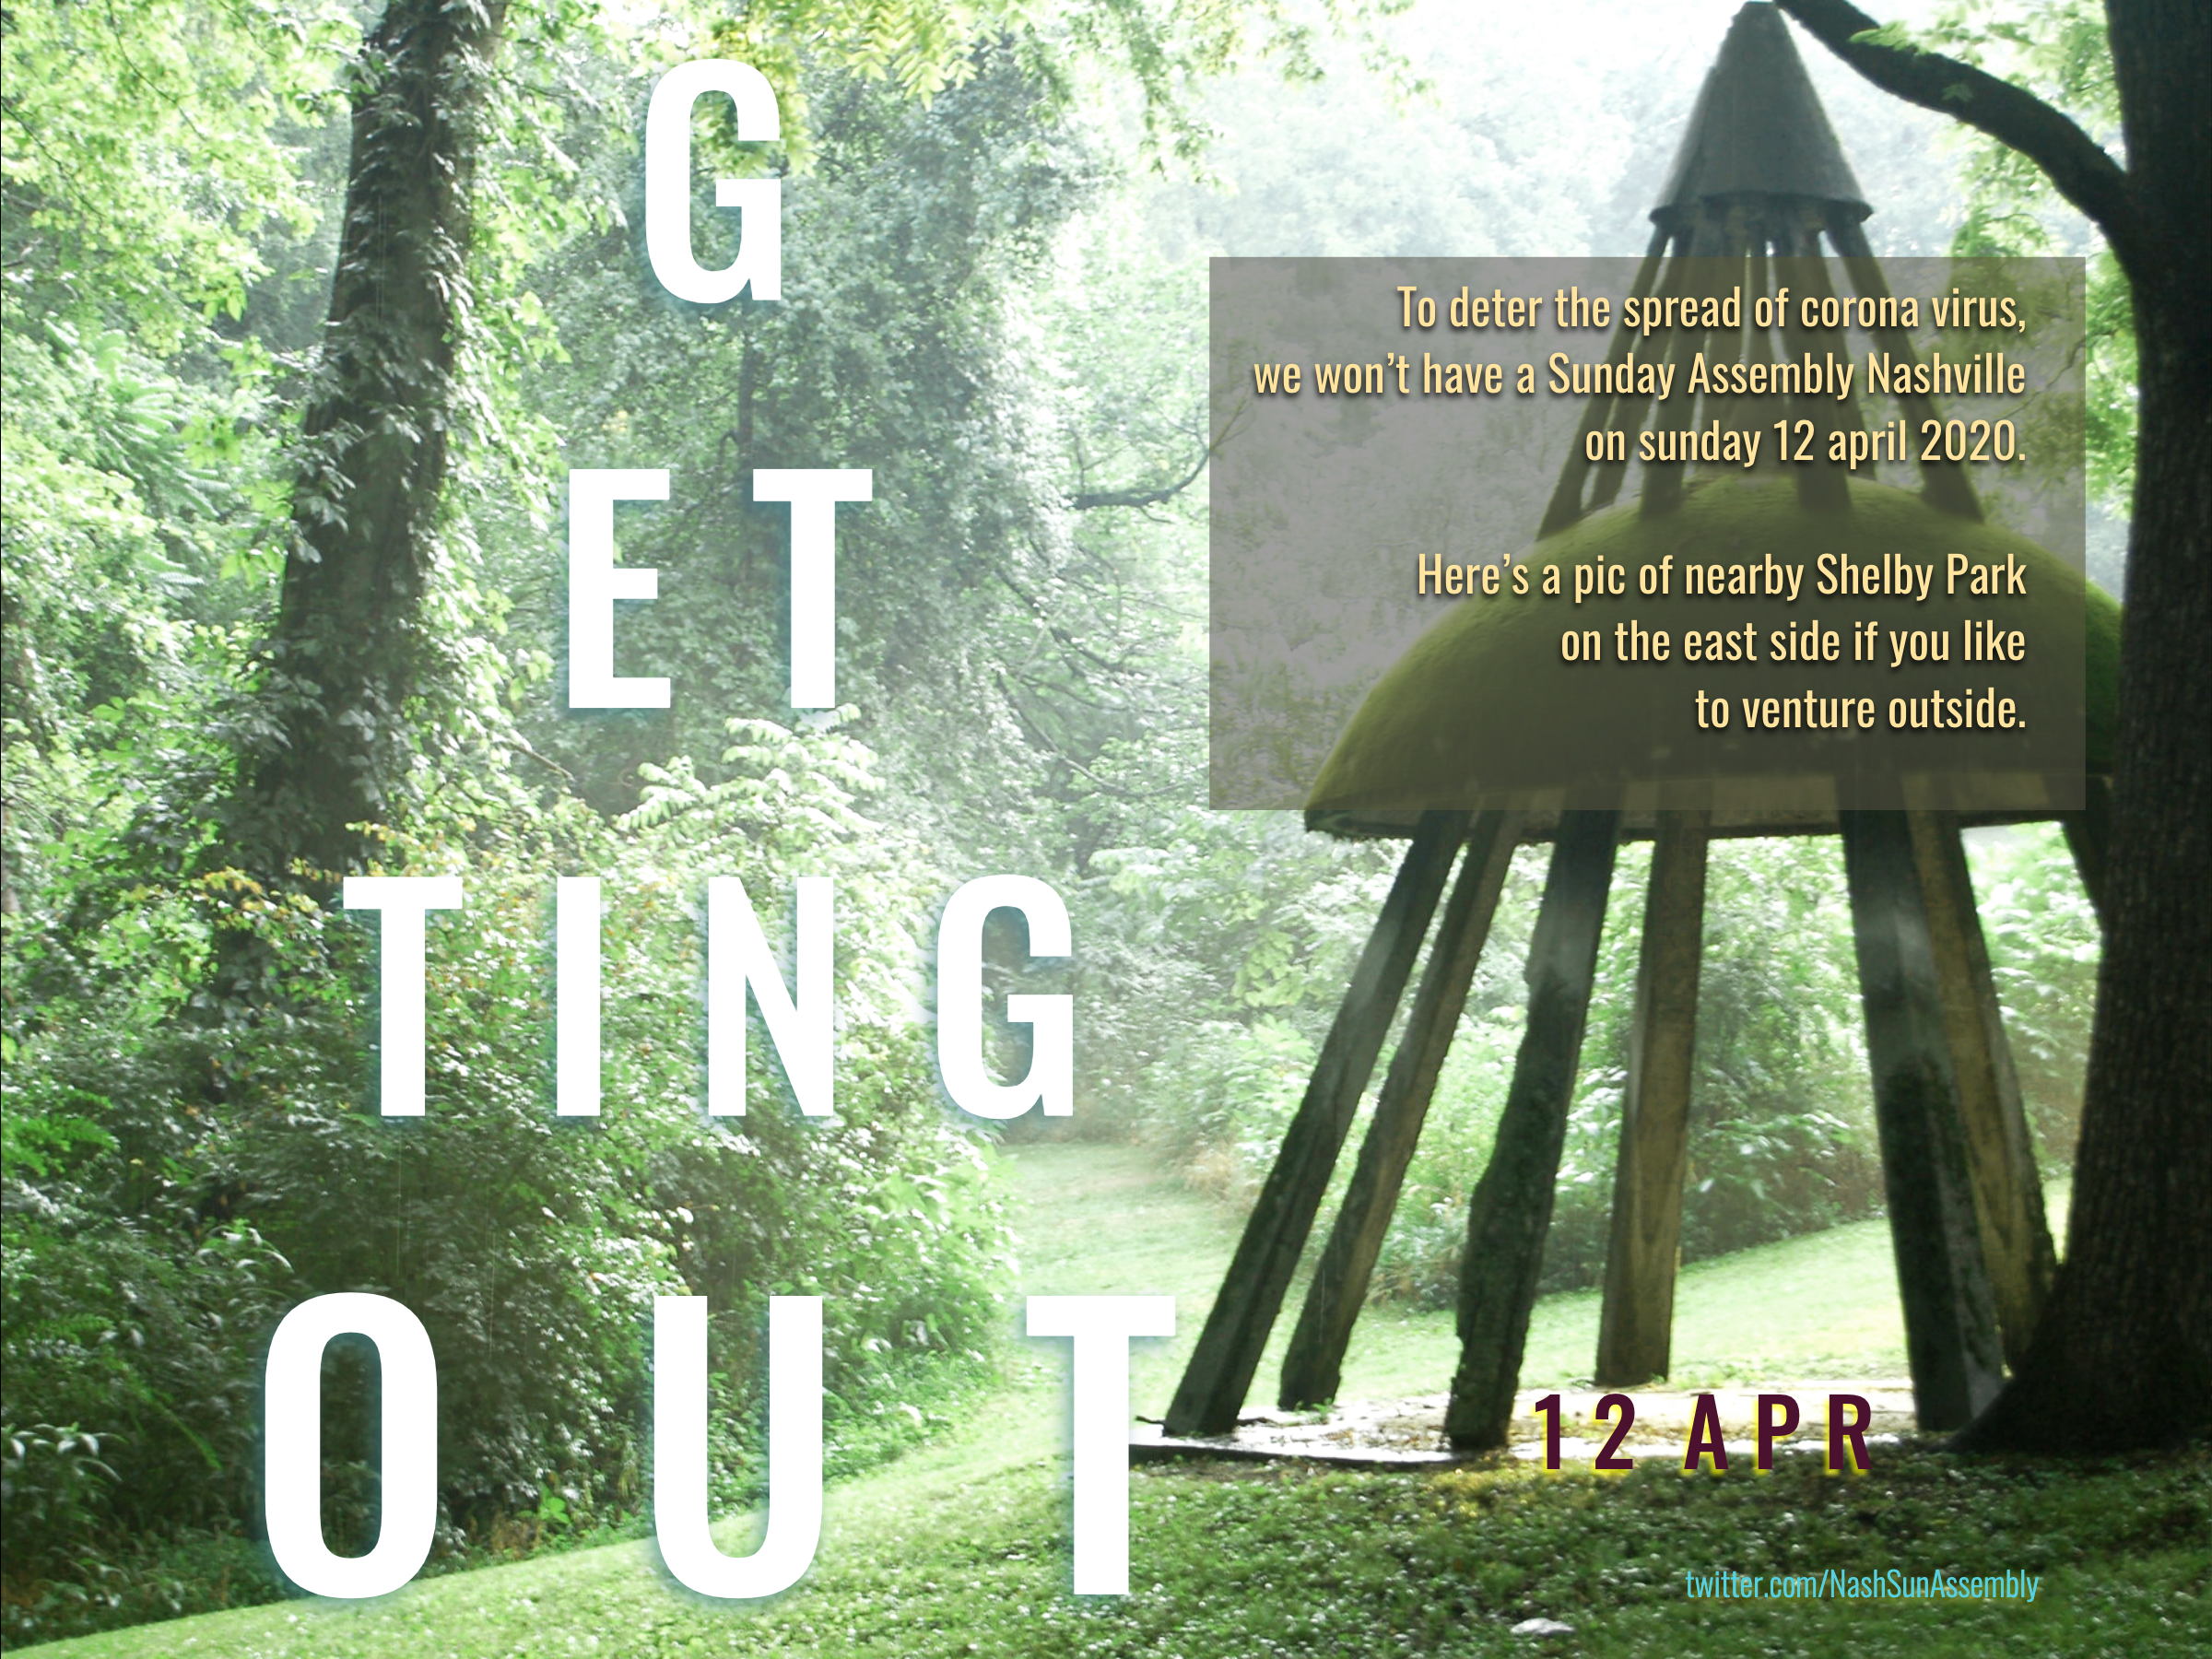 Getting Out • 12 apr